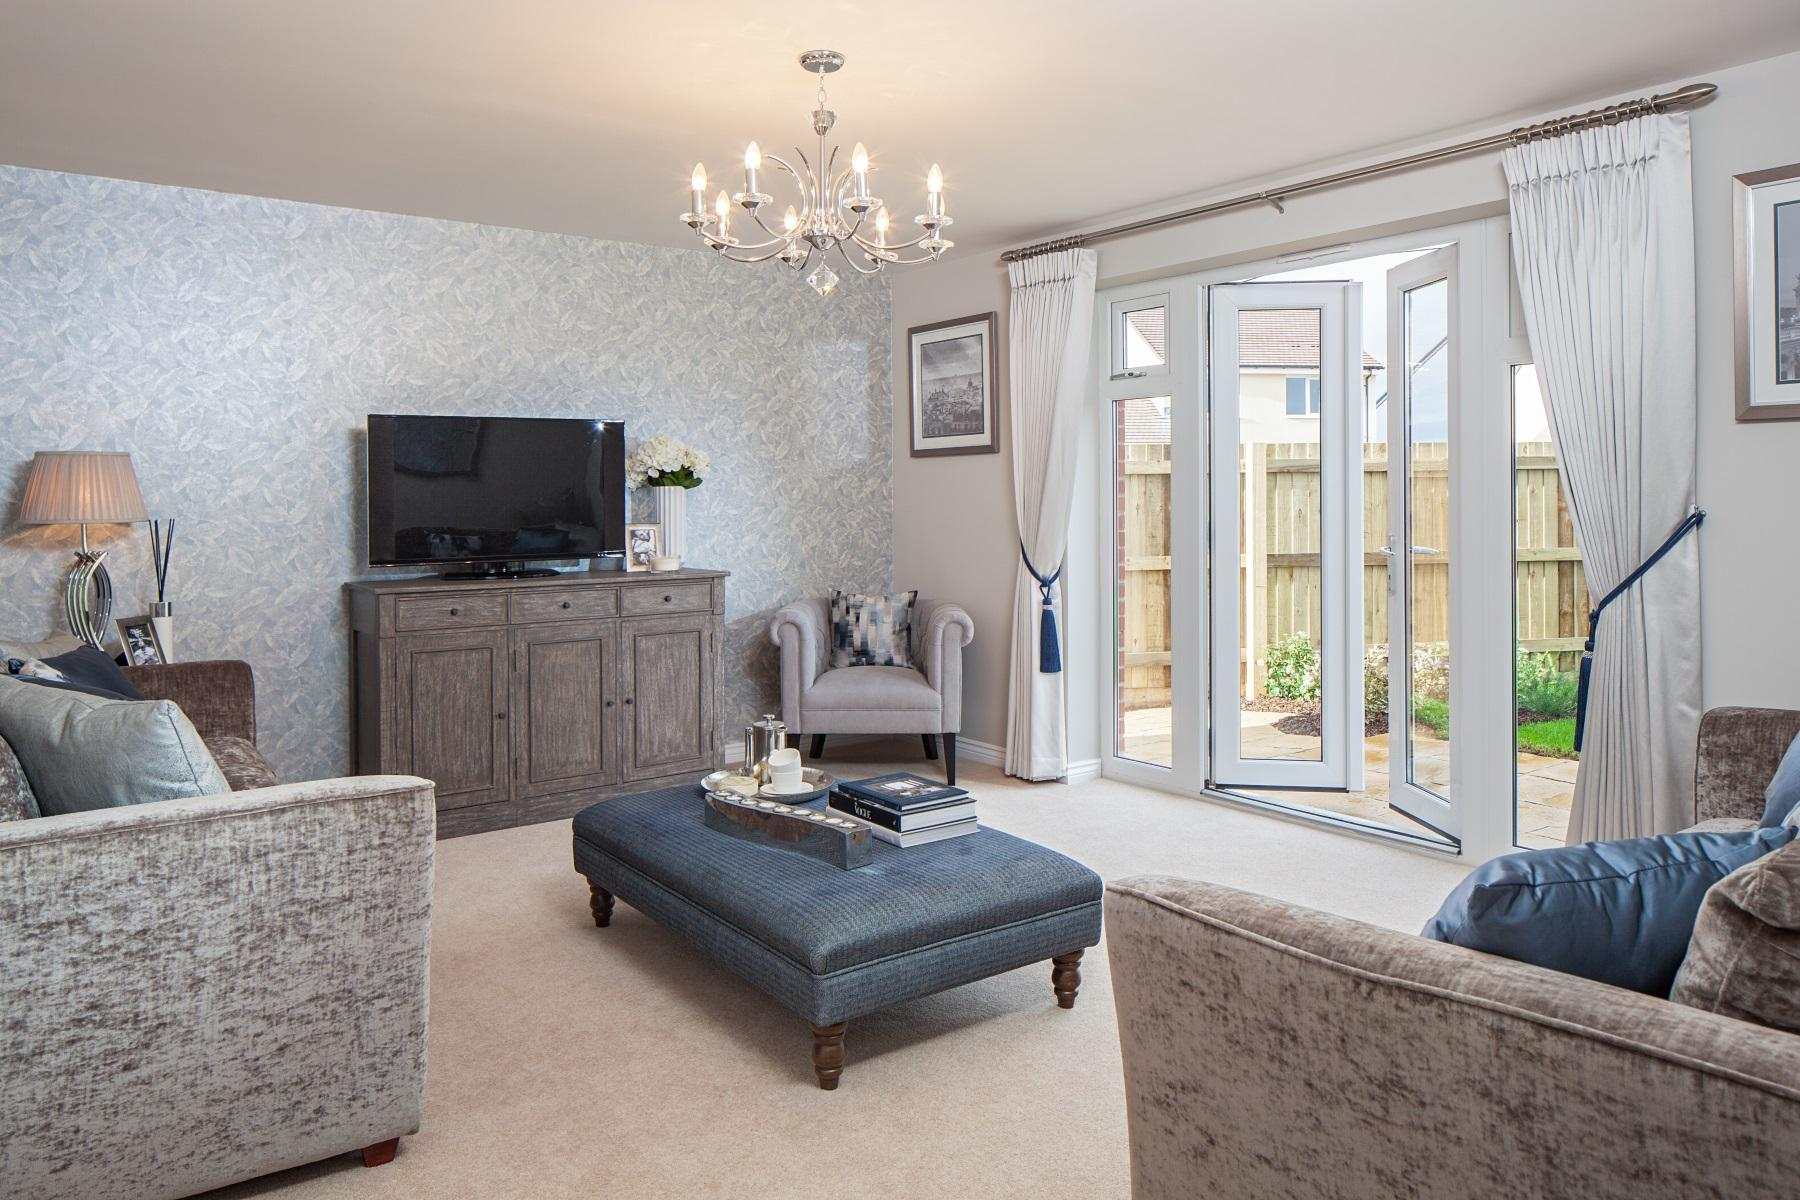 TW Exeter - Copleston Heights - Thornford example living room